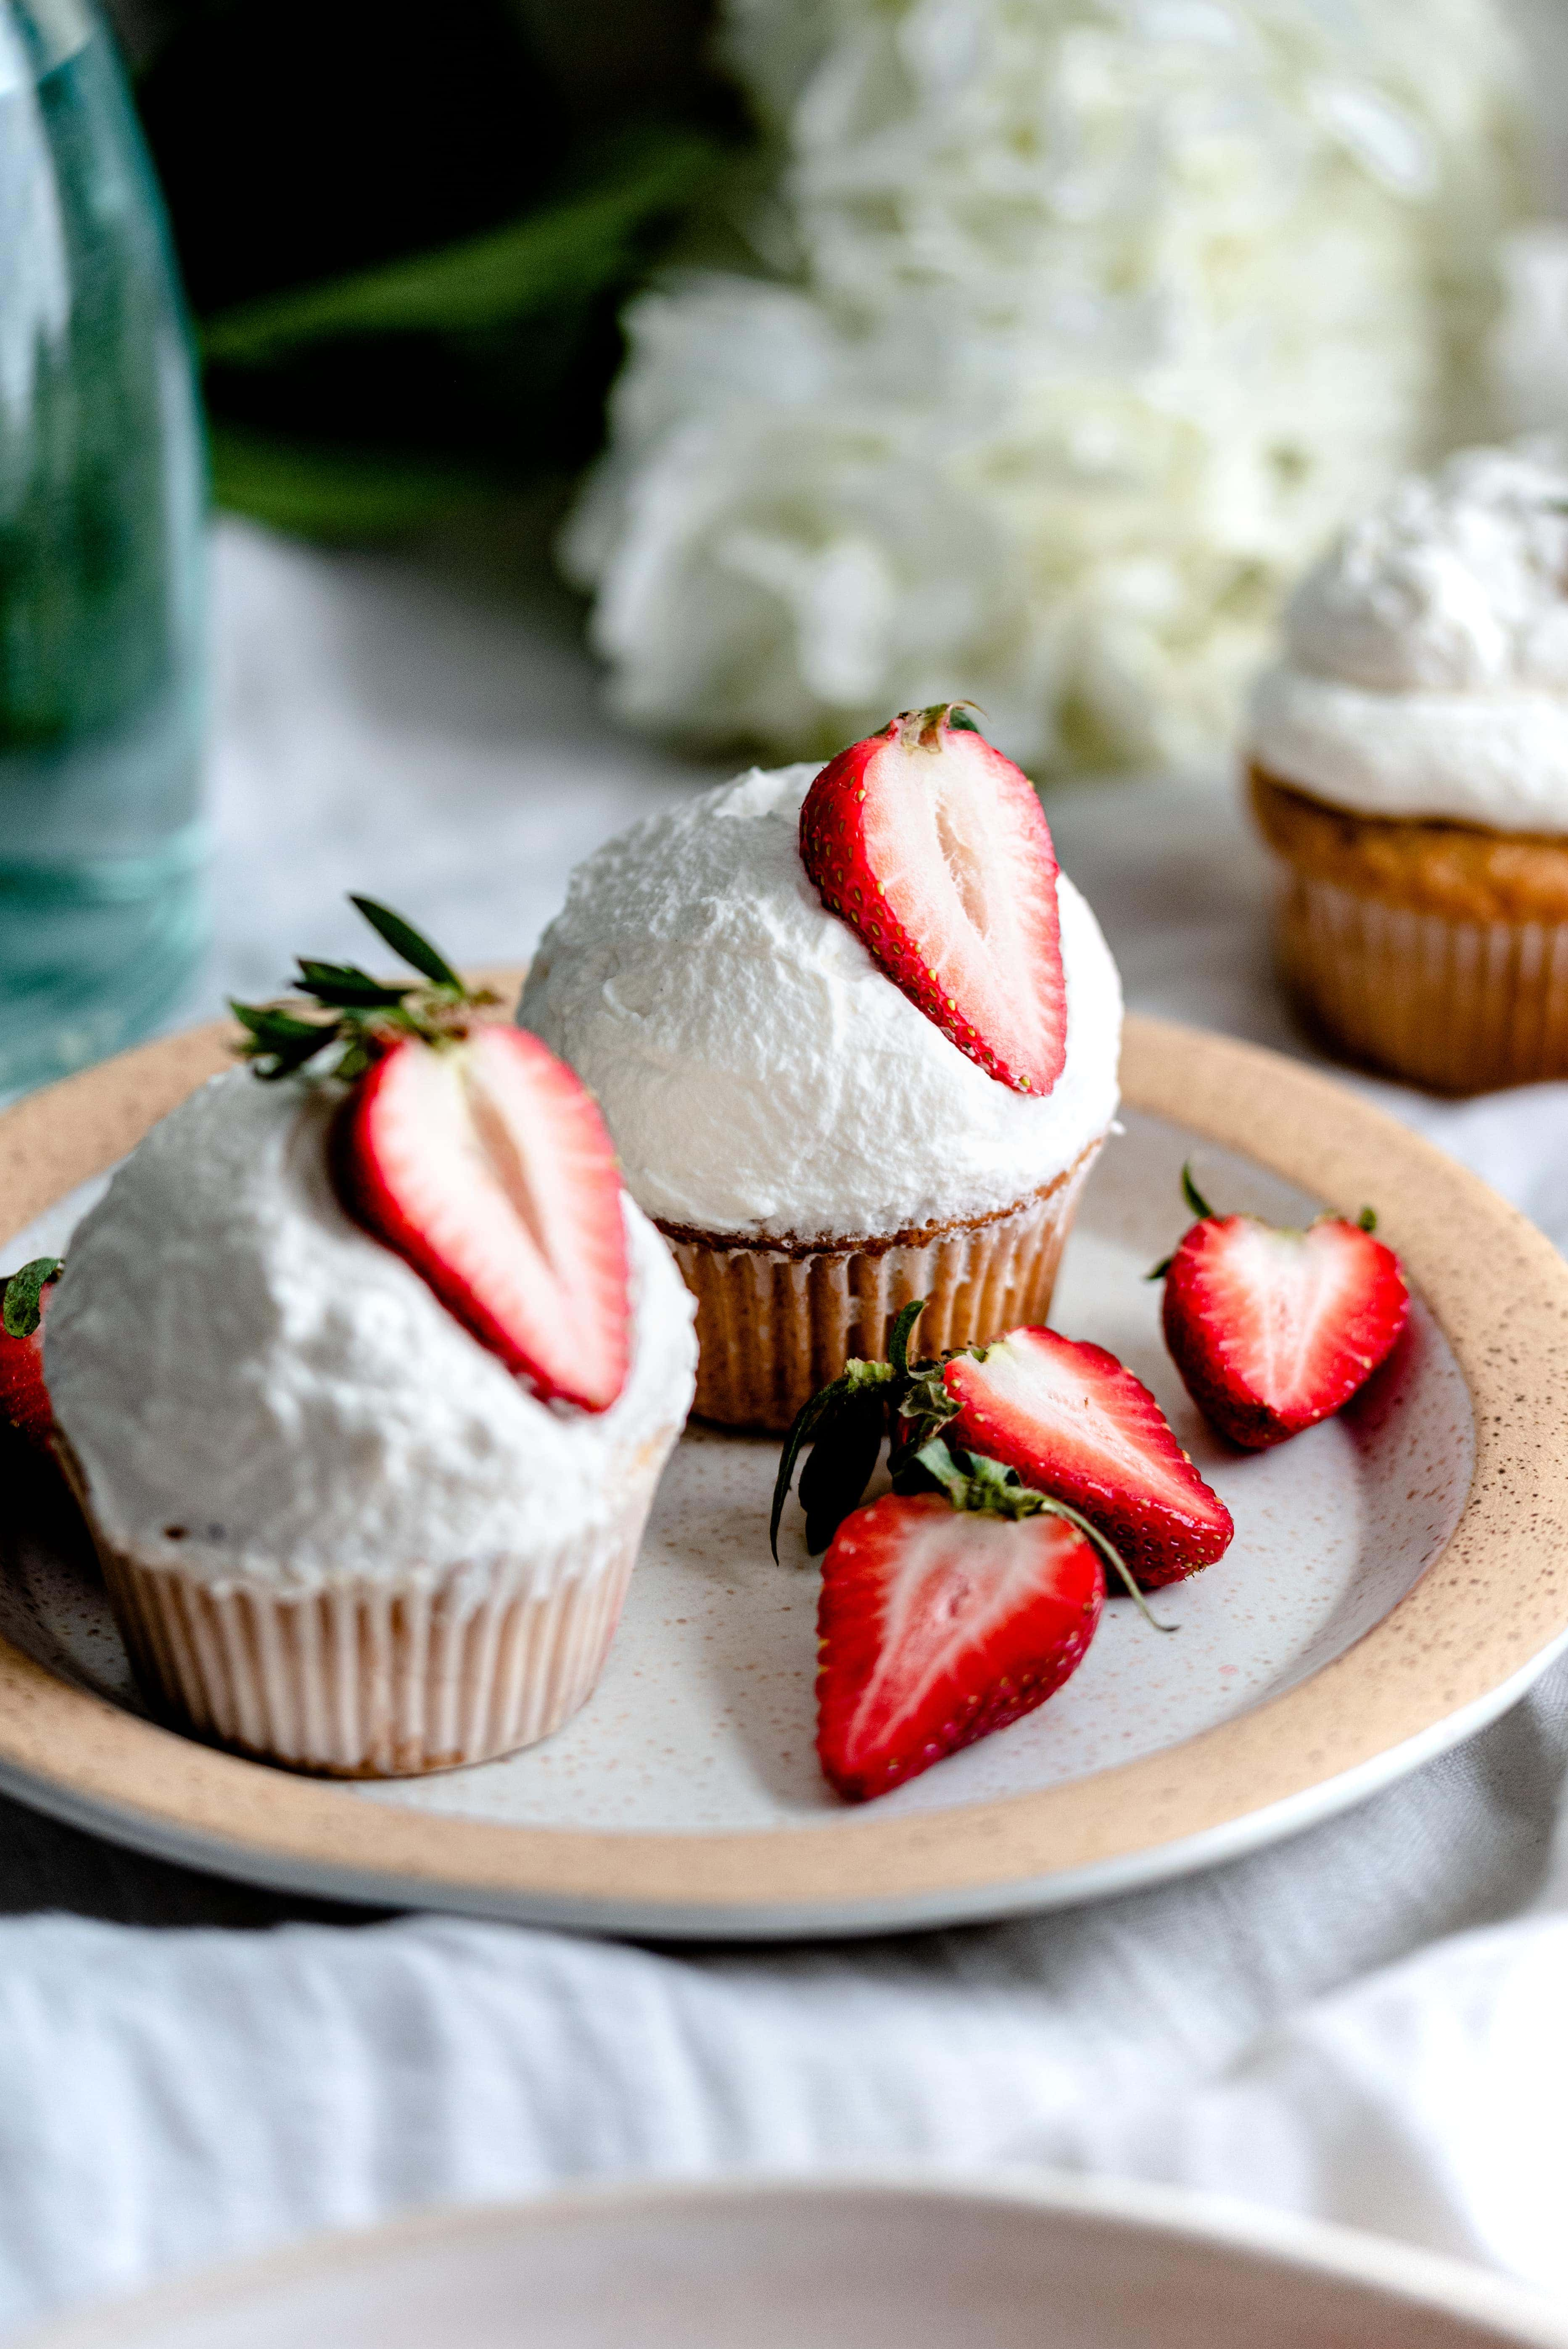 Two strawberry cupcakes topped with whipped cream on a plate